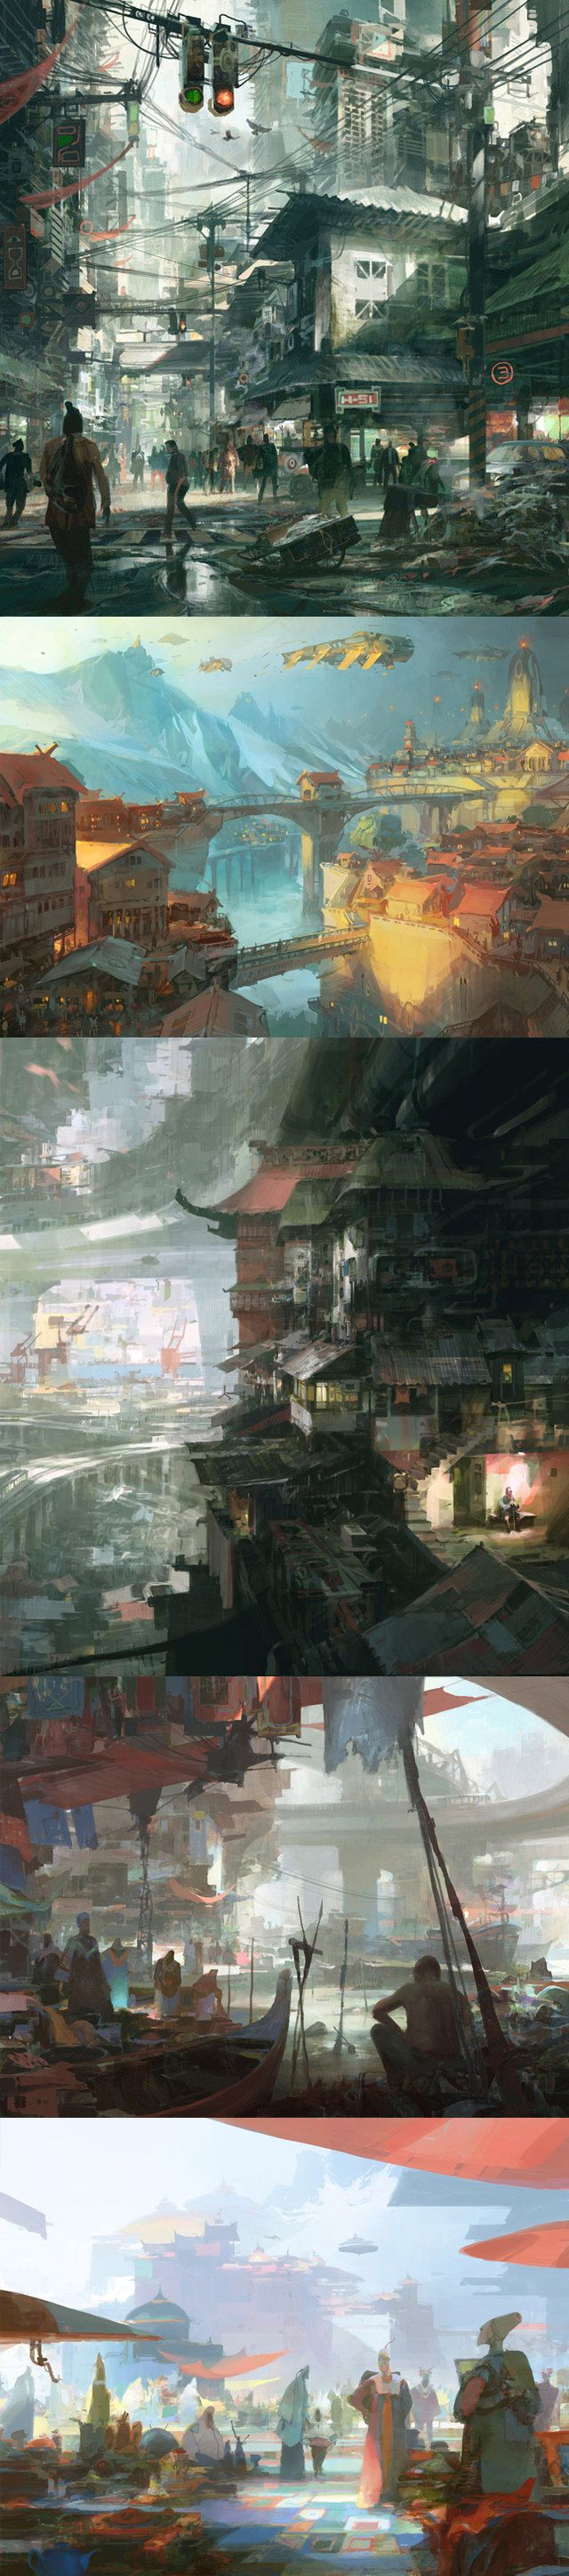 Artwork by Theo Prins. Interesting, moody images.